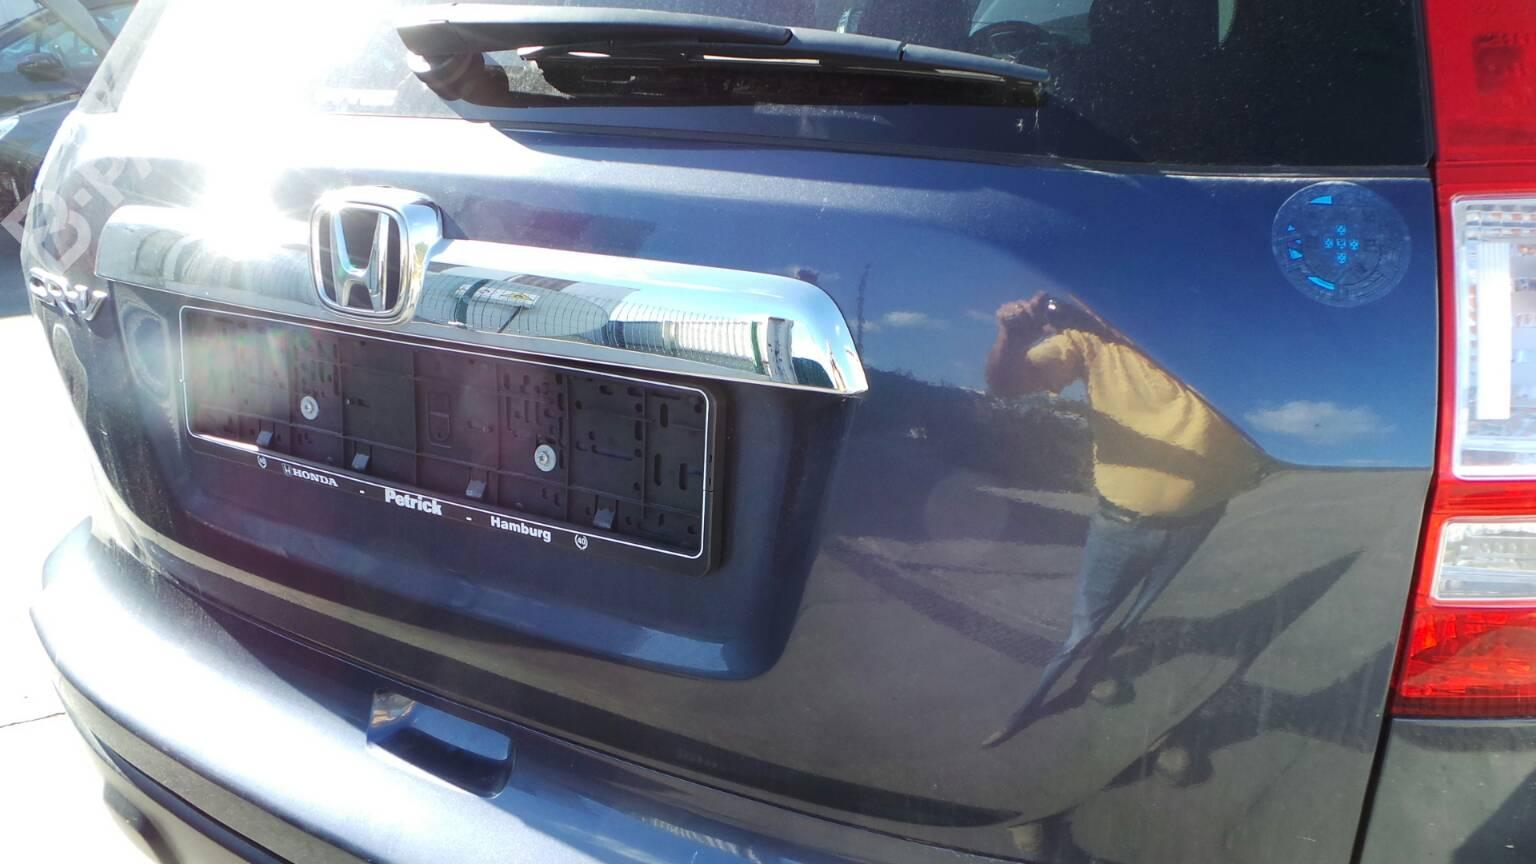 Tailgate Honda Cr V Iii Re 20 I 4wd 123098 Online Store 2009 Crv Parts 4wd5 Doors